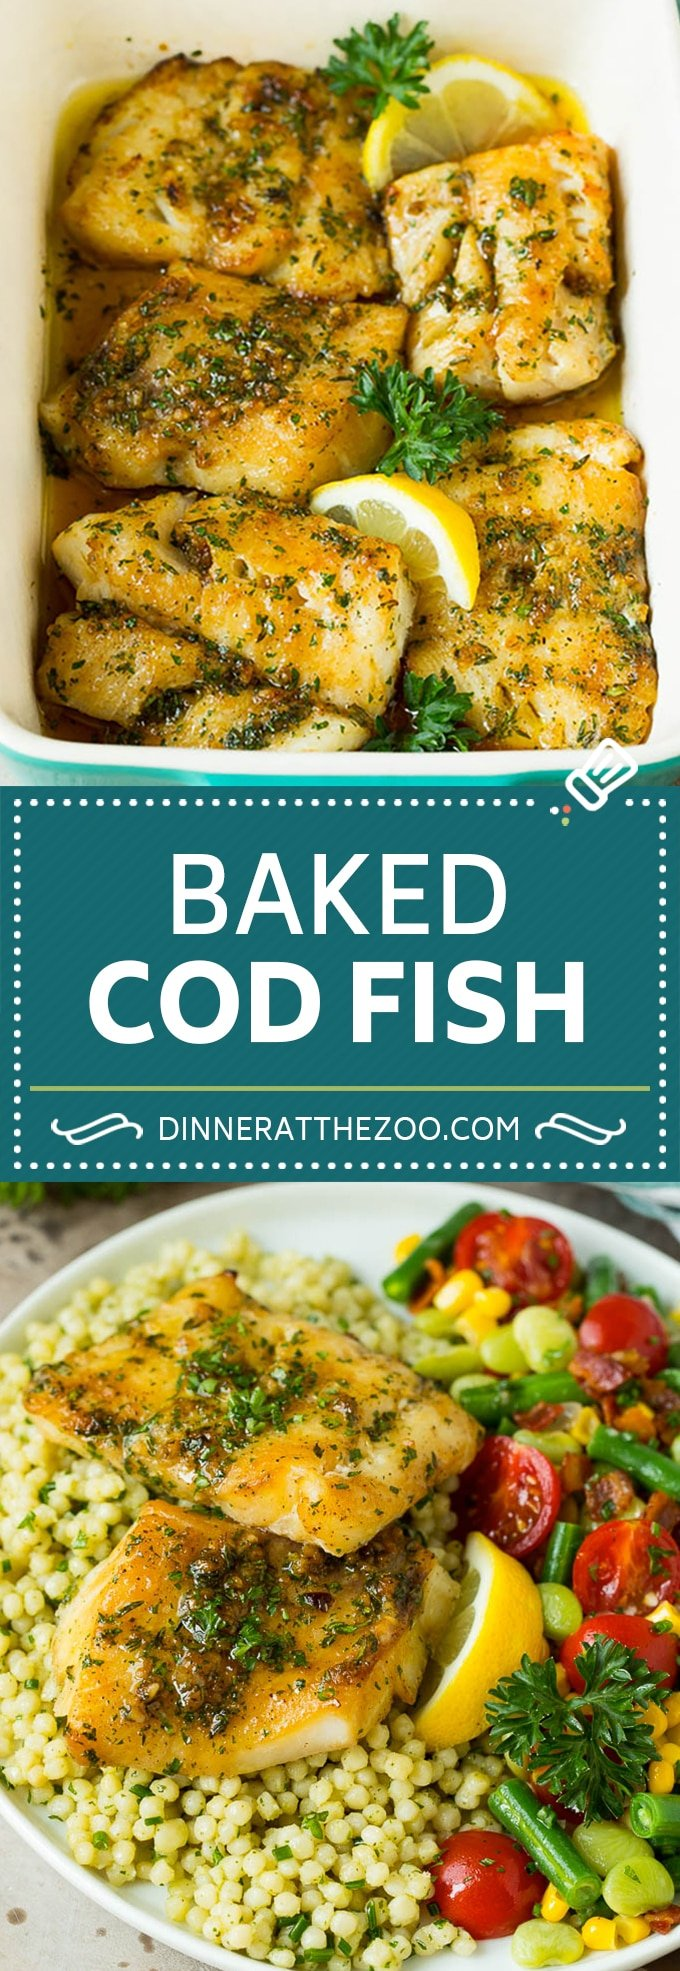 This baked cod is marinated with olive oil, garlic and fresh herbs, then roasted to tender and flaky perfection.